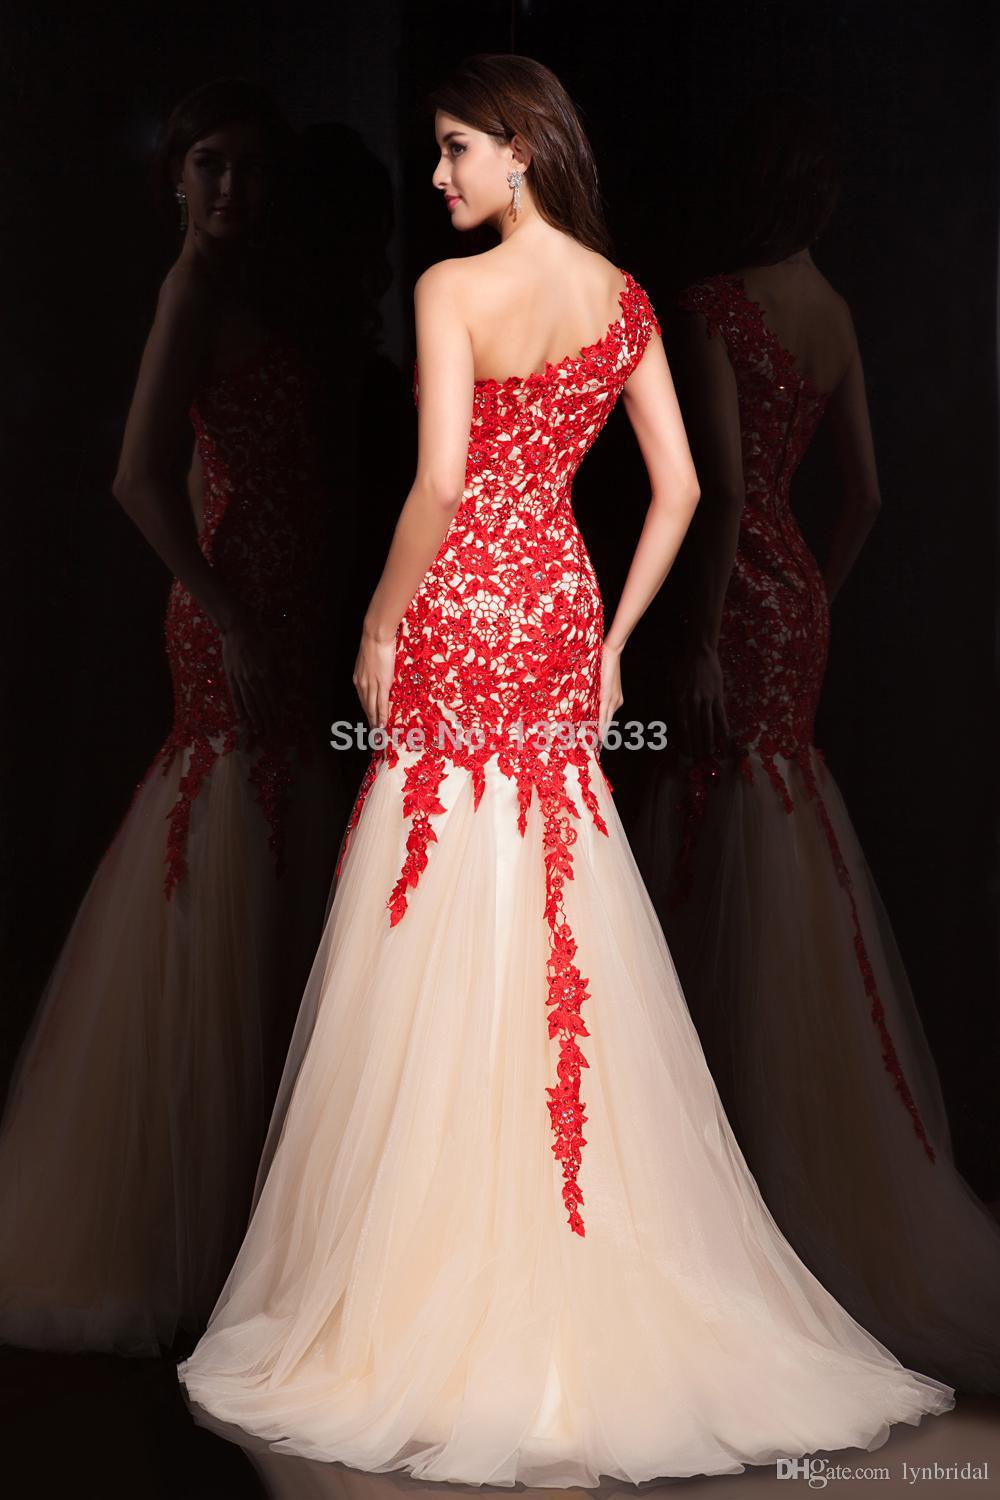 Red Lace Formal Dresses One Shoulder Mermaid Pattern Champagne Skirt ...